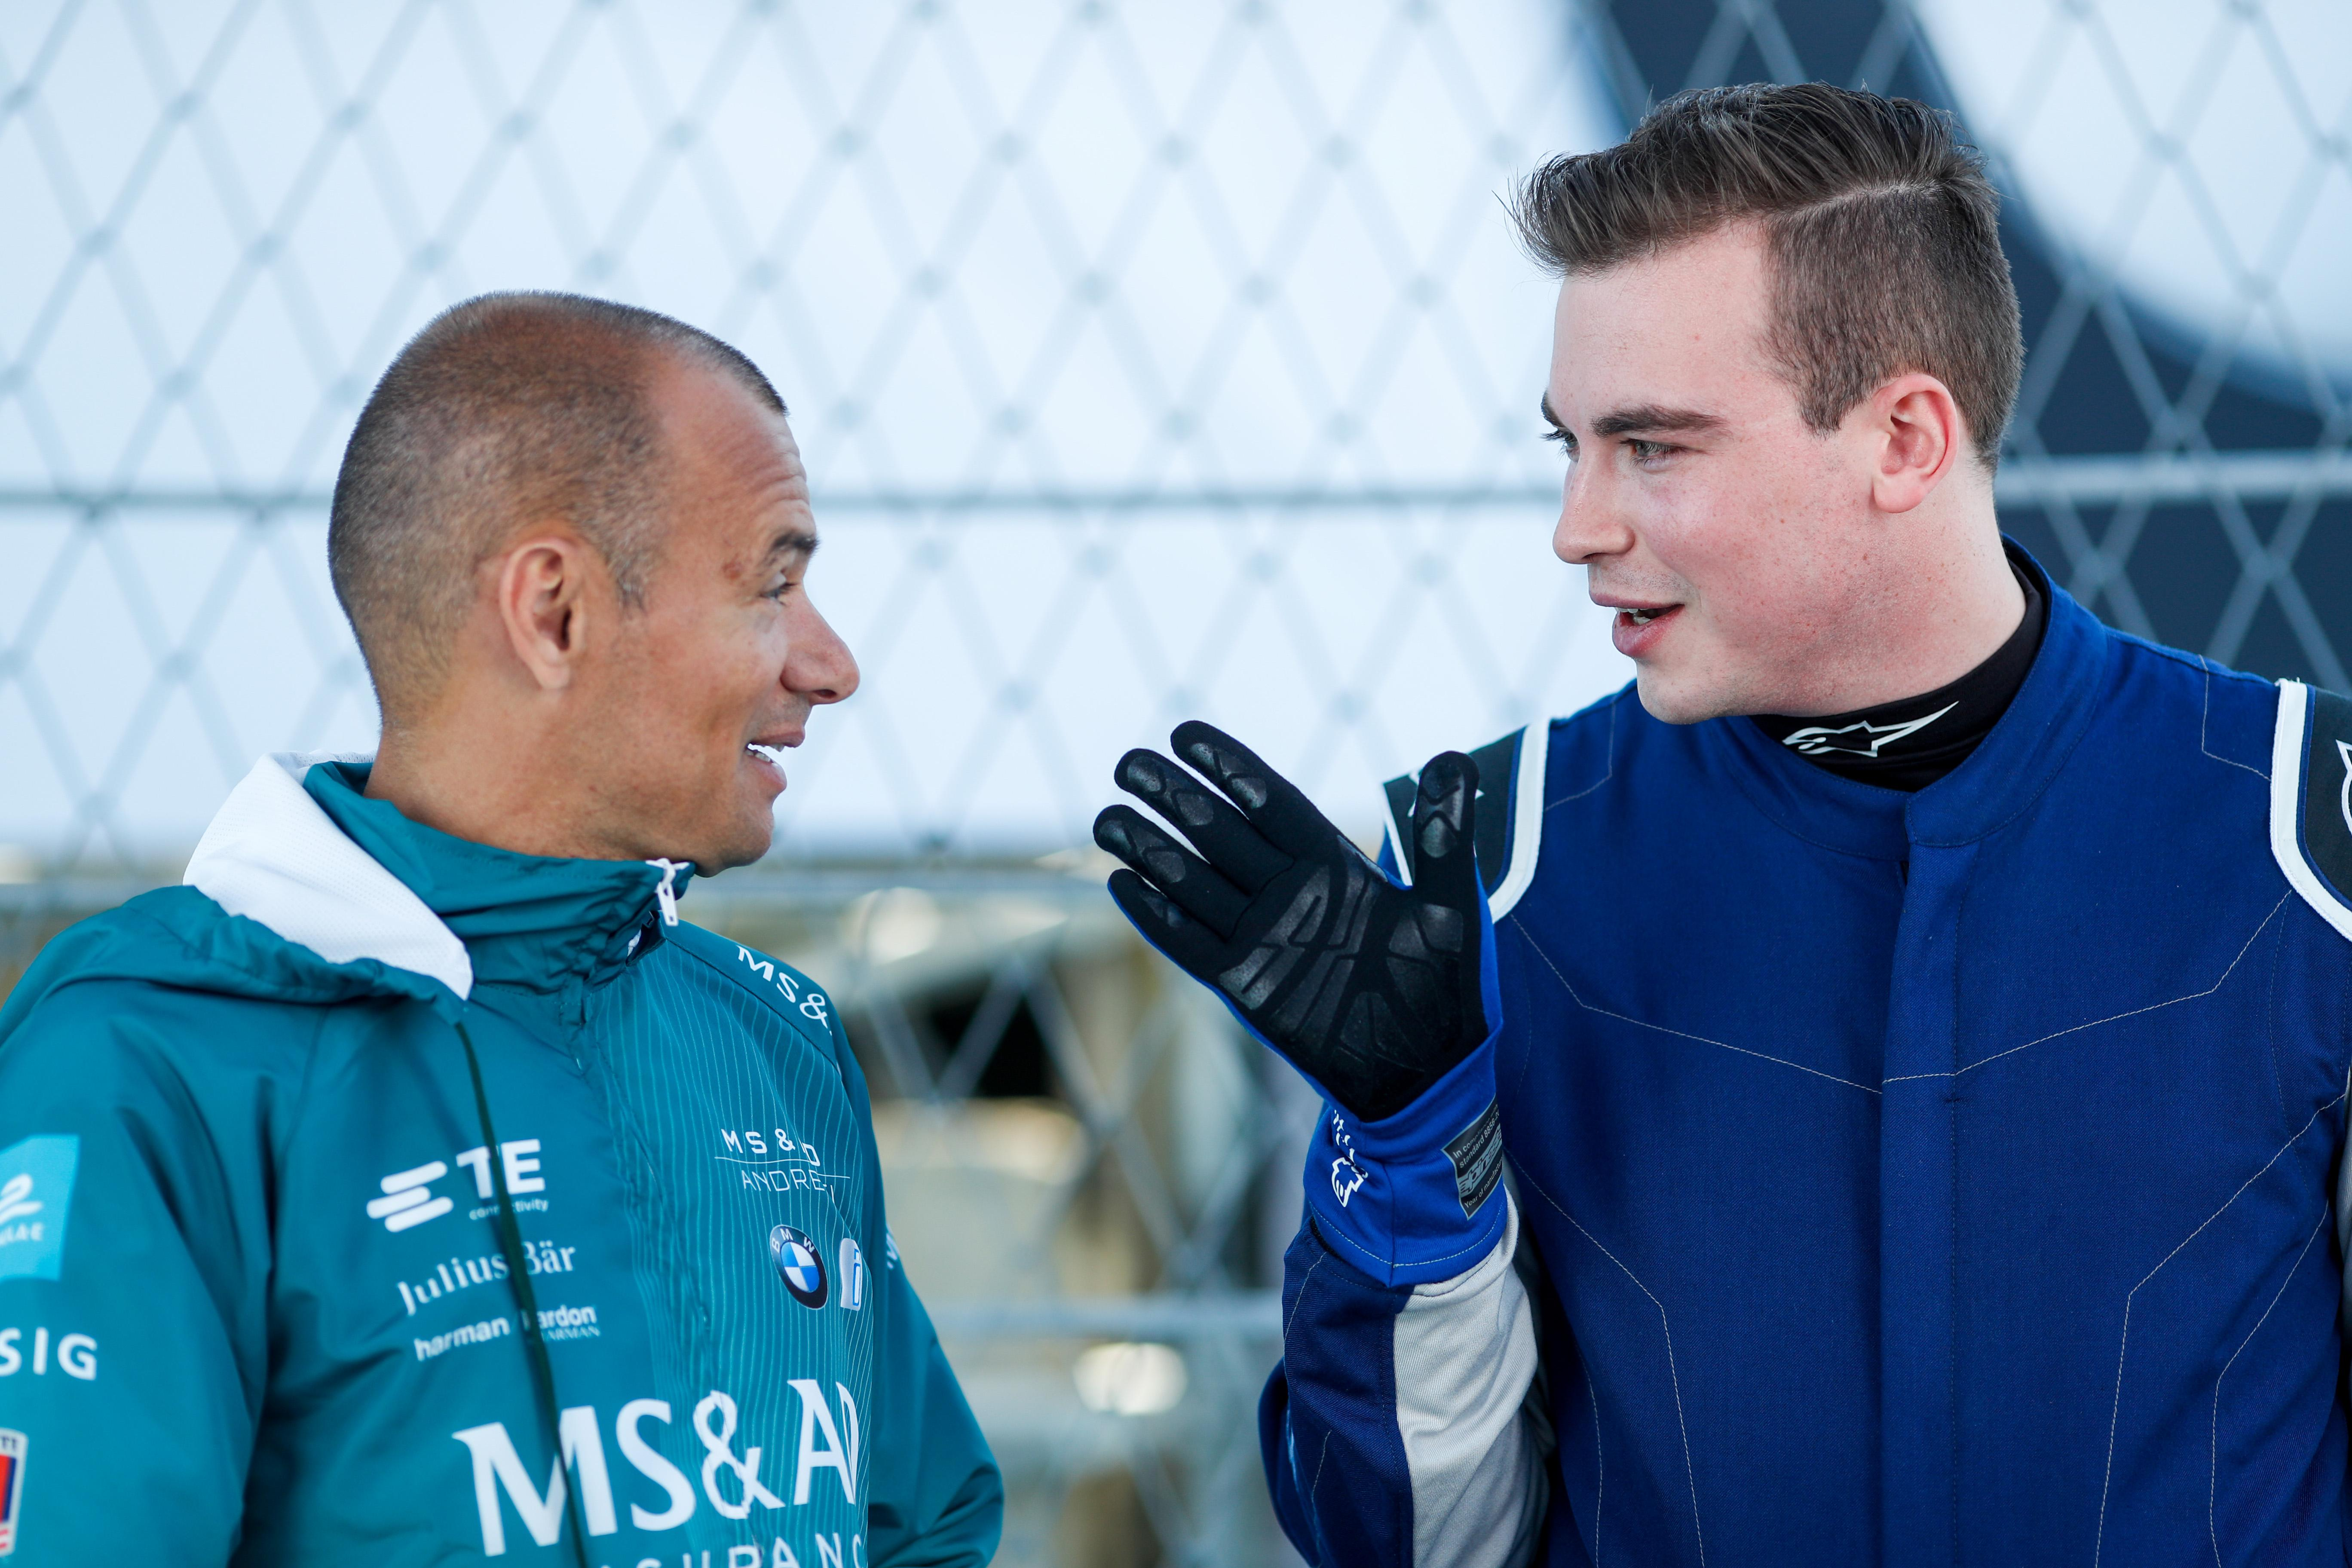 Experienced race driver Stephane Sarrazin gave his advice before hitting the track